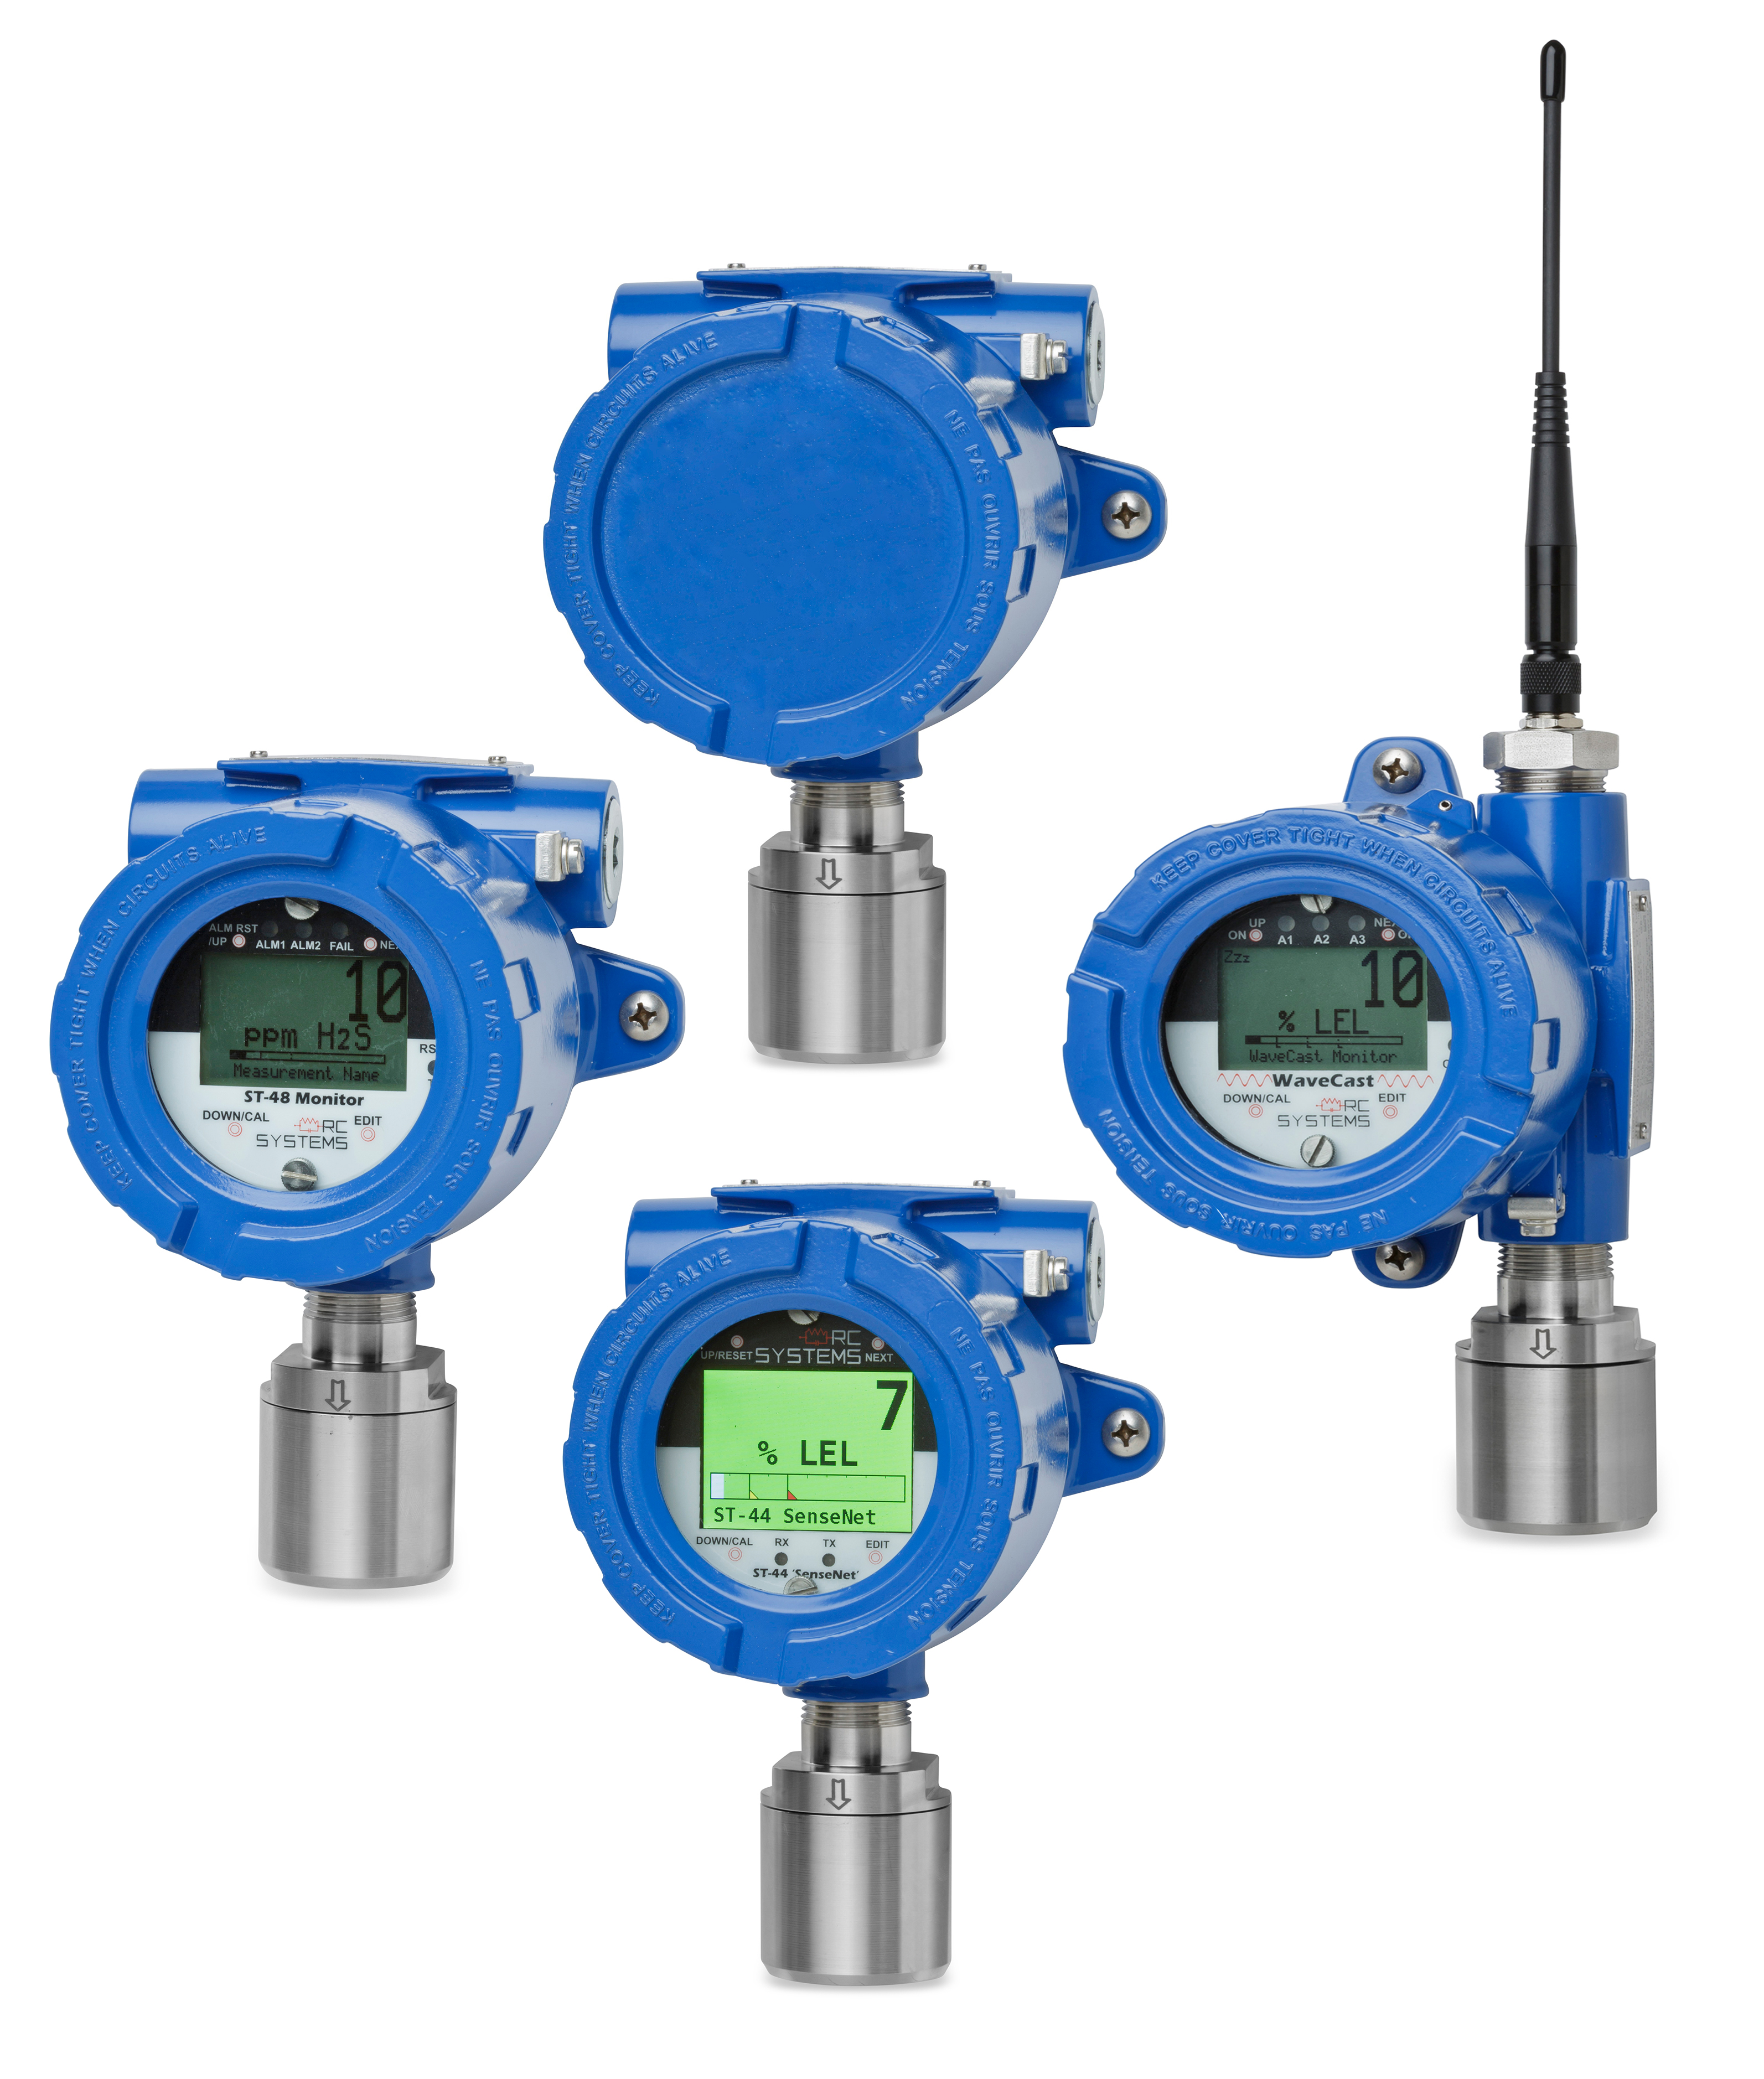 Remote Sensors and Gas Detectors